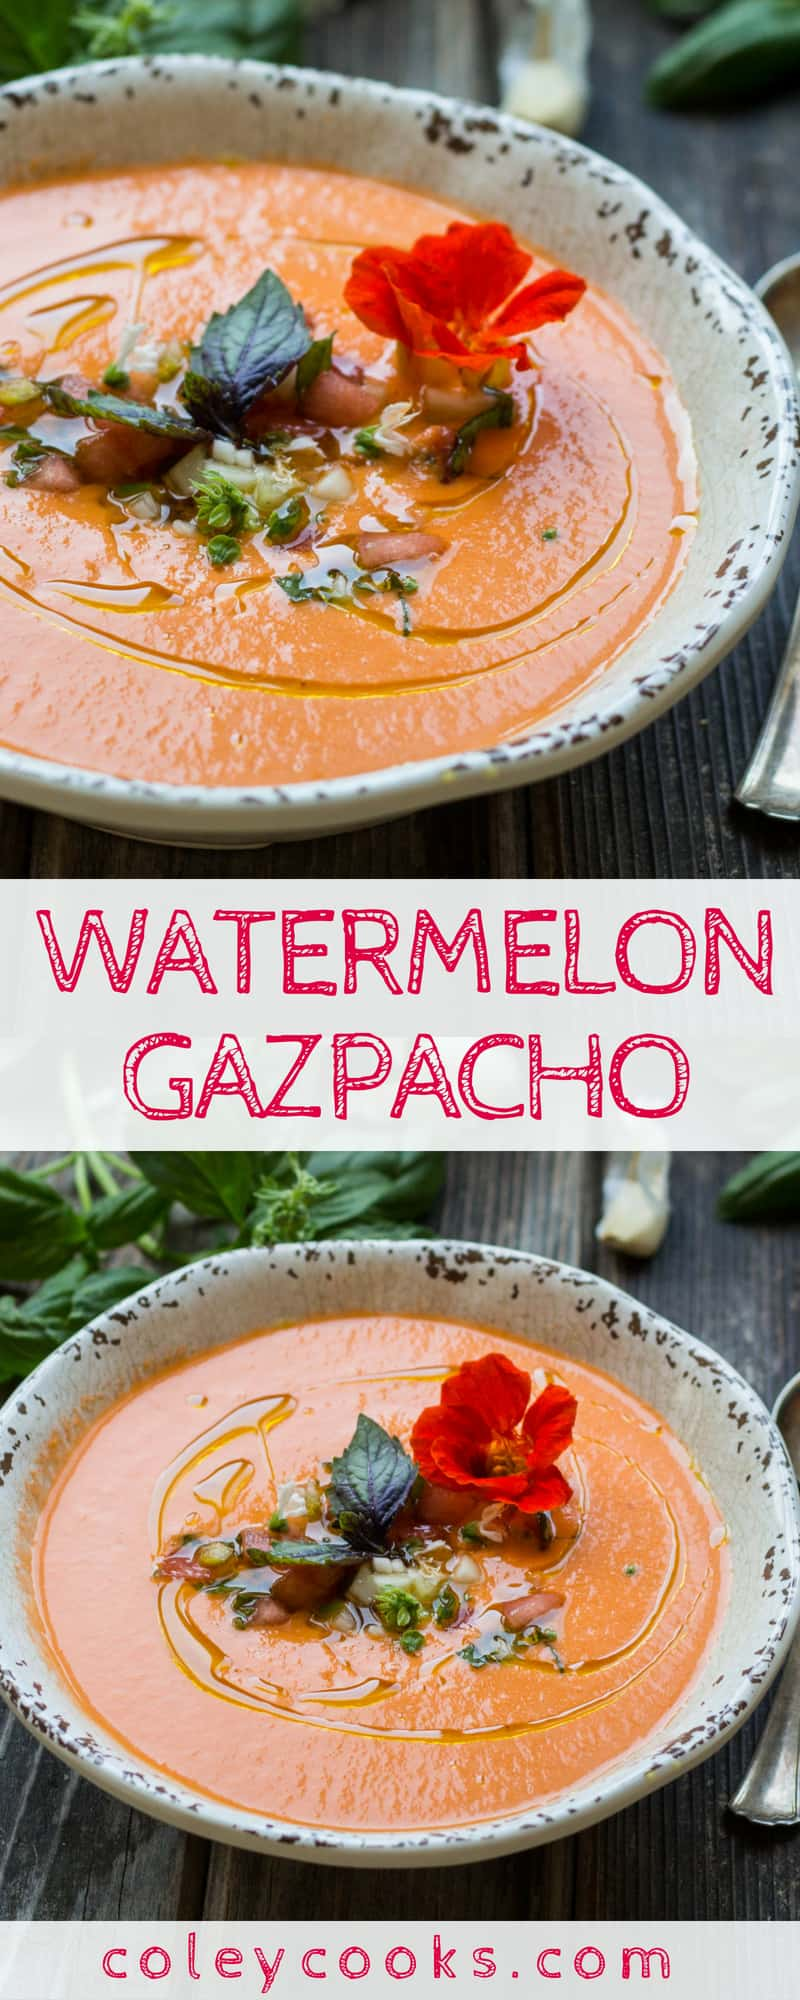 WATERMELON GAZPACHO| Easy vegan gazpacho recipe! Silky smooth, perfectly balanced, insanely delicious on a hot summer day! #summer #soup #watermelon #gazpacho #vegan #plantbased #recipe | ColeyCooks.com